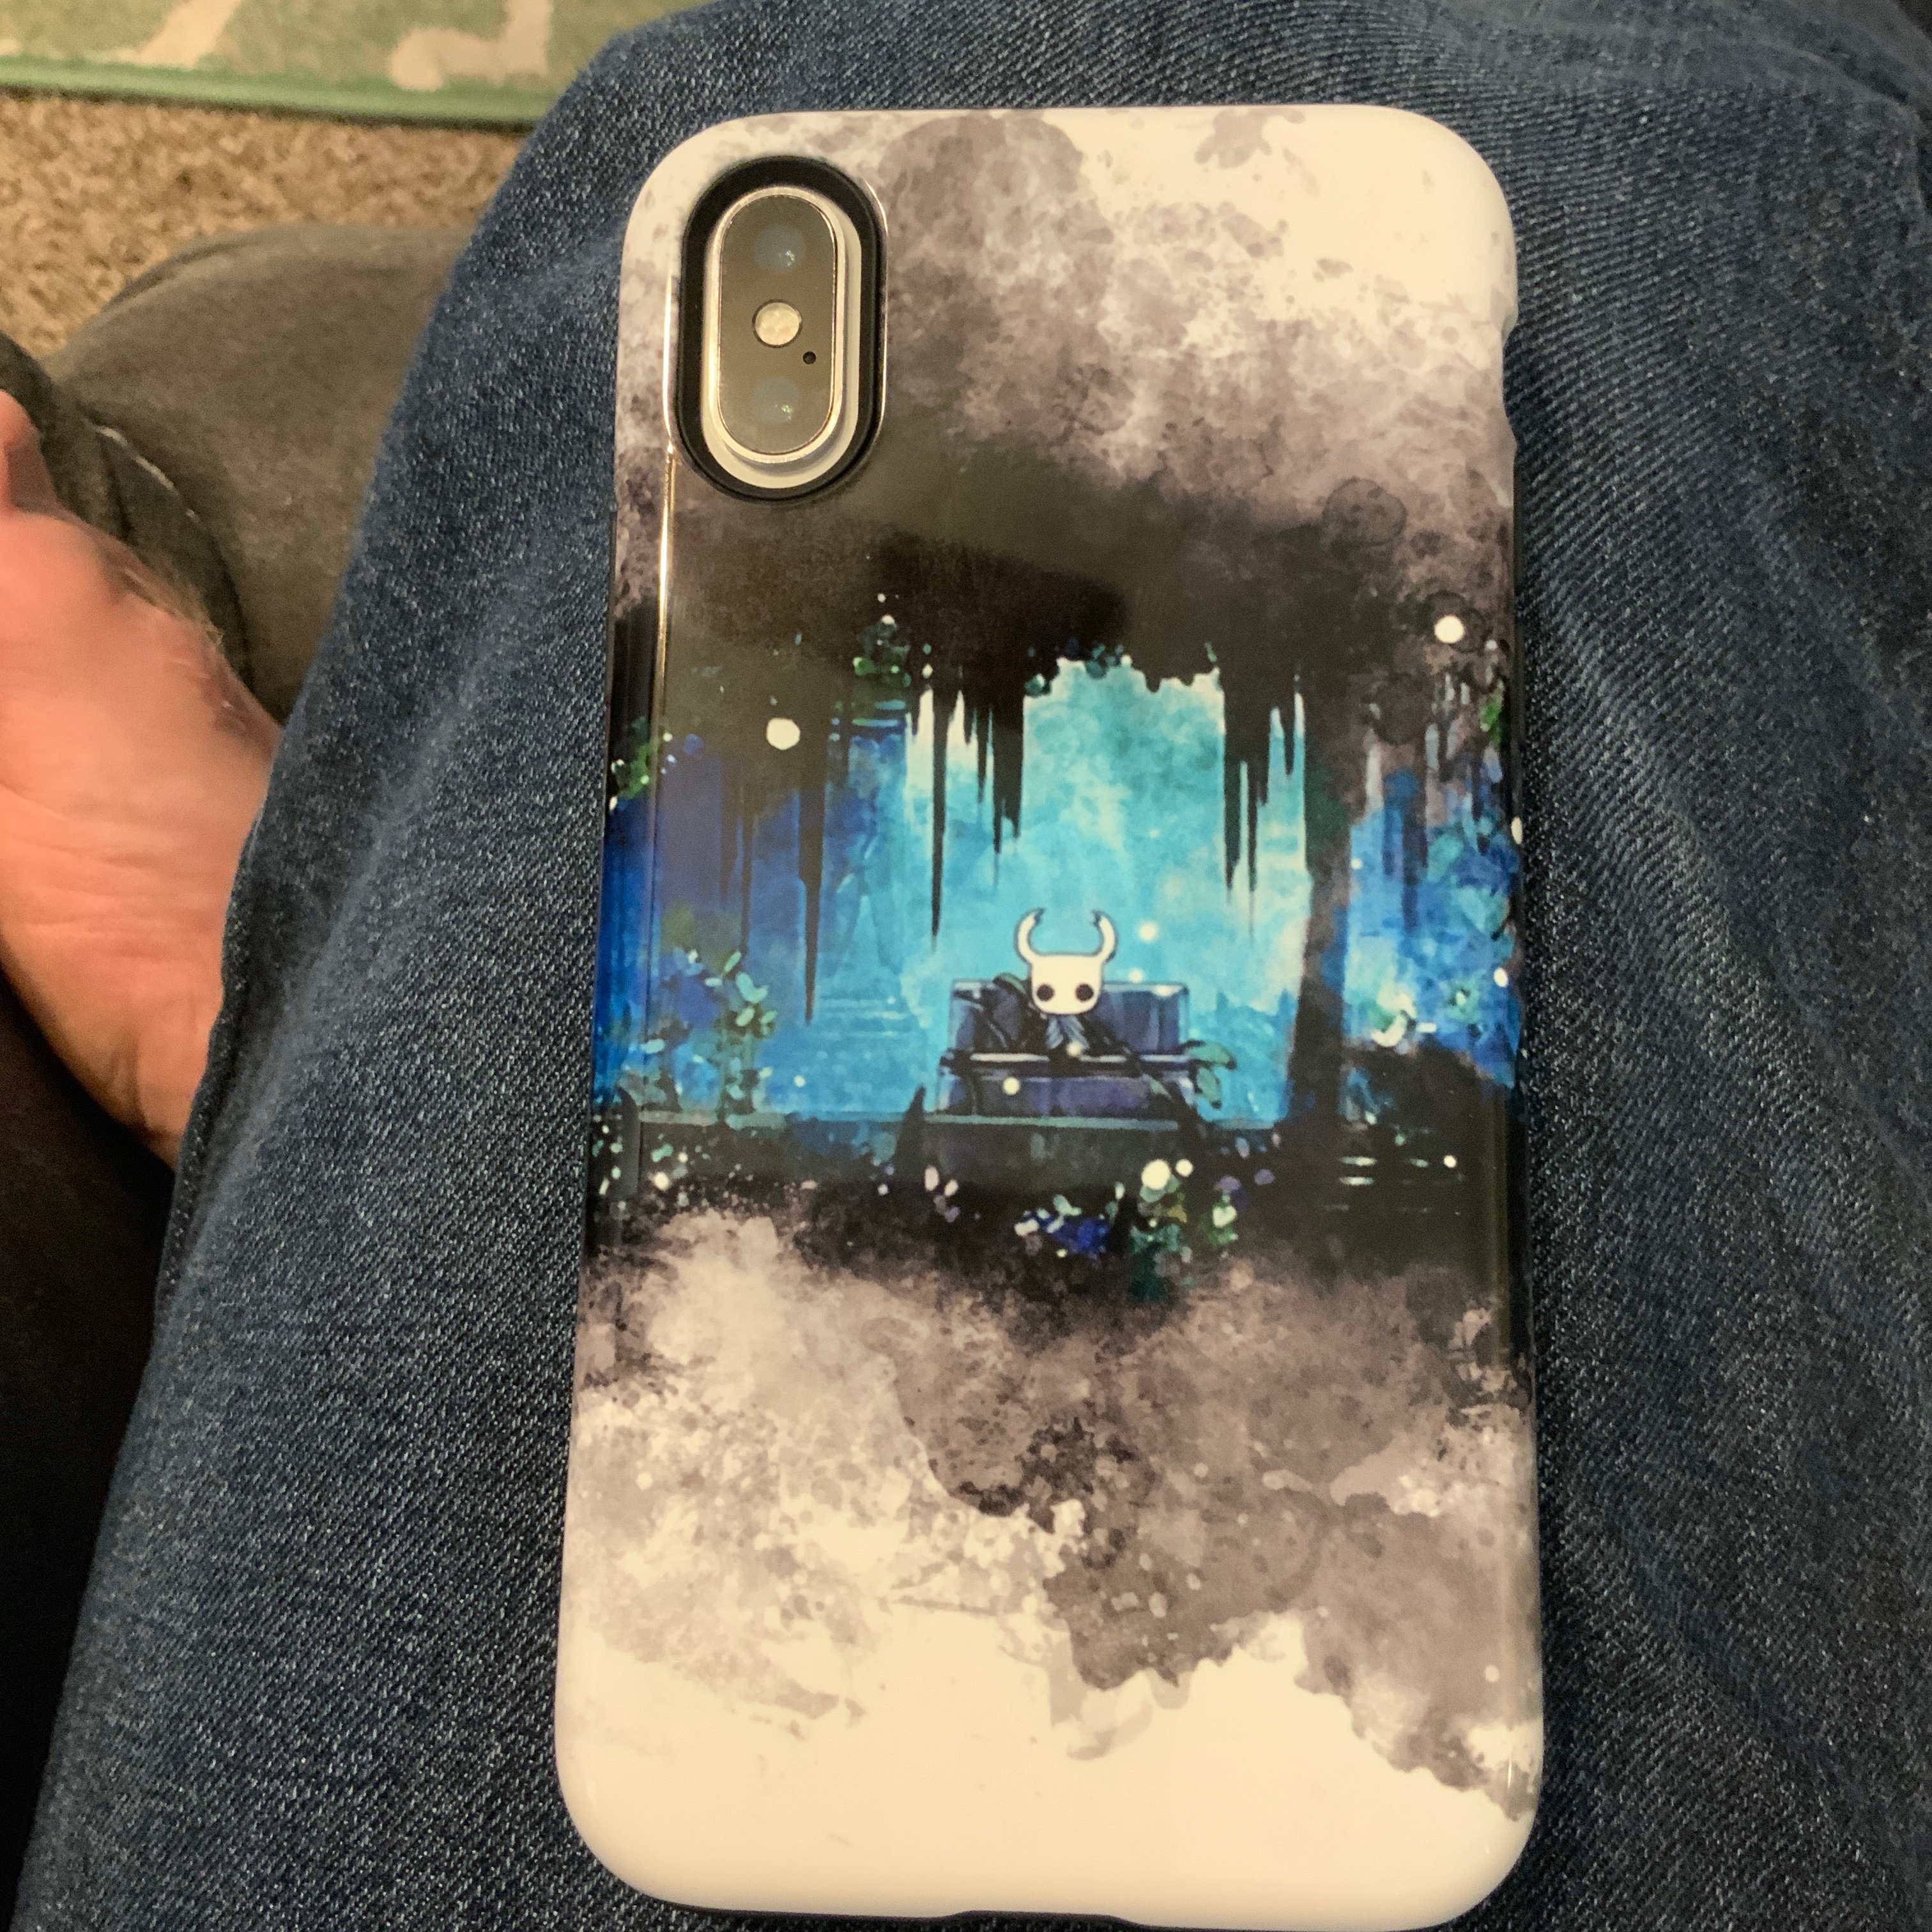 My new phone case, based on Hollow Knight